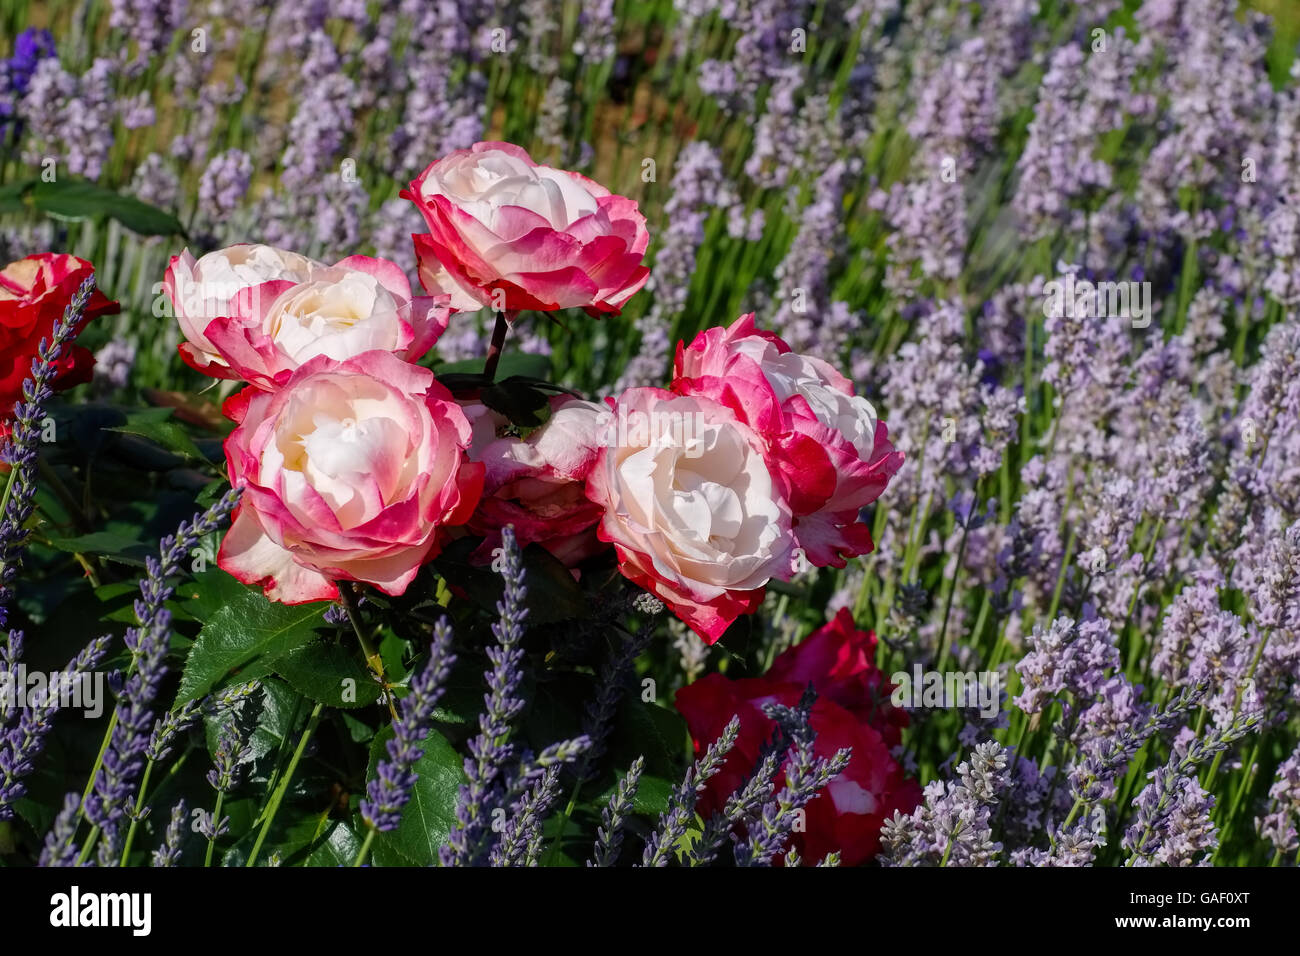 Rose Nostalgie in rot und weiß - the Rose Nostalgie and lavender flowers in summer garden - Stock Image